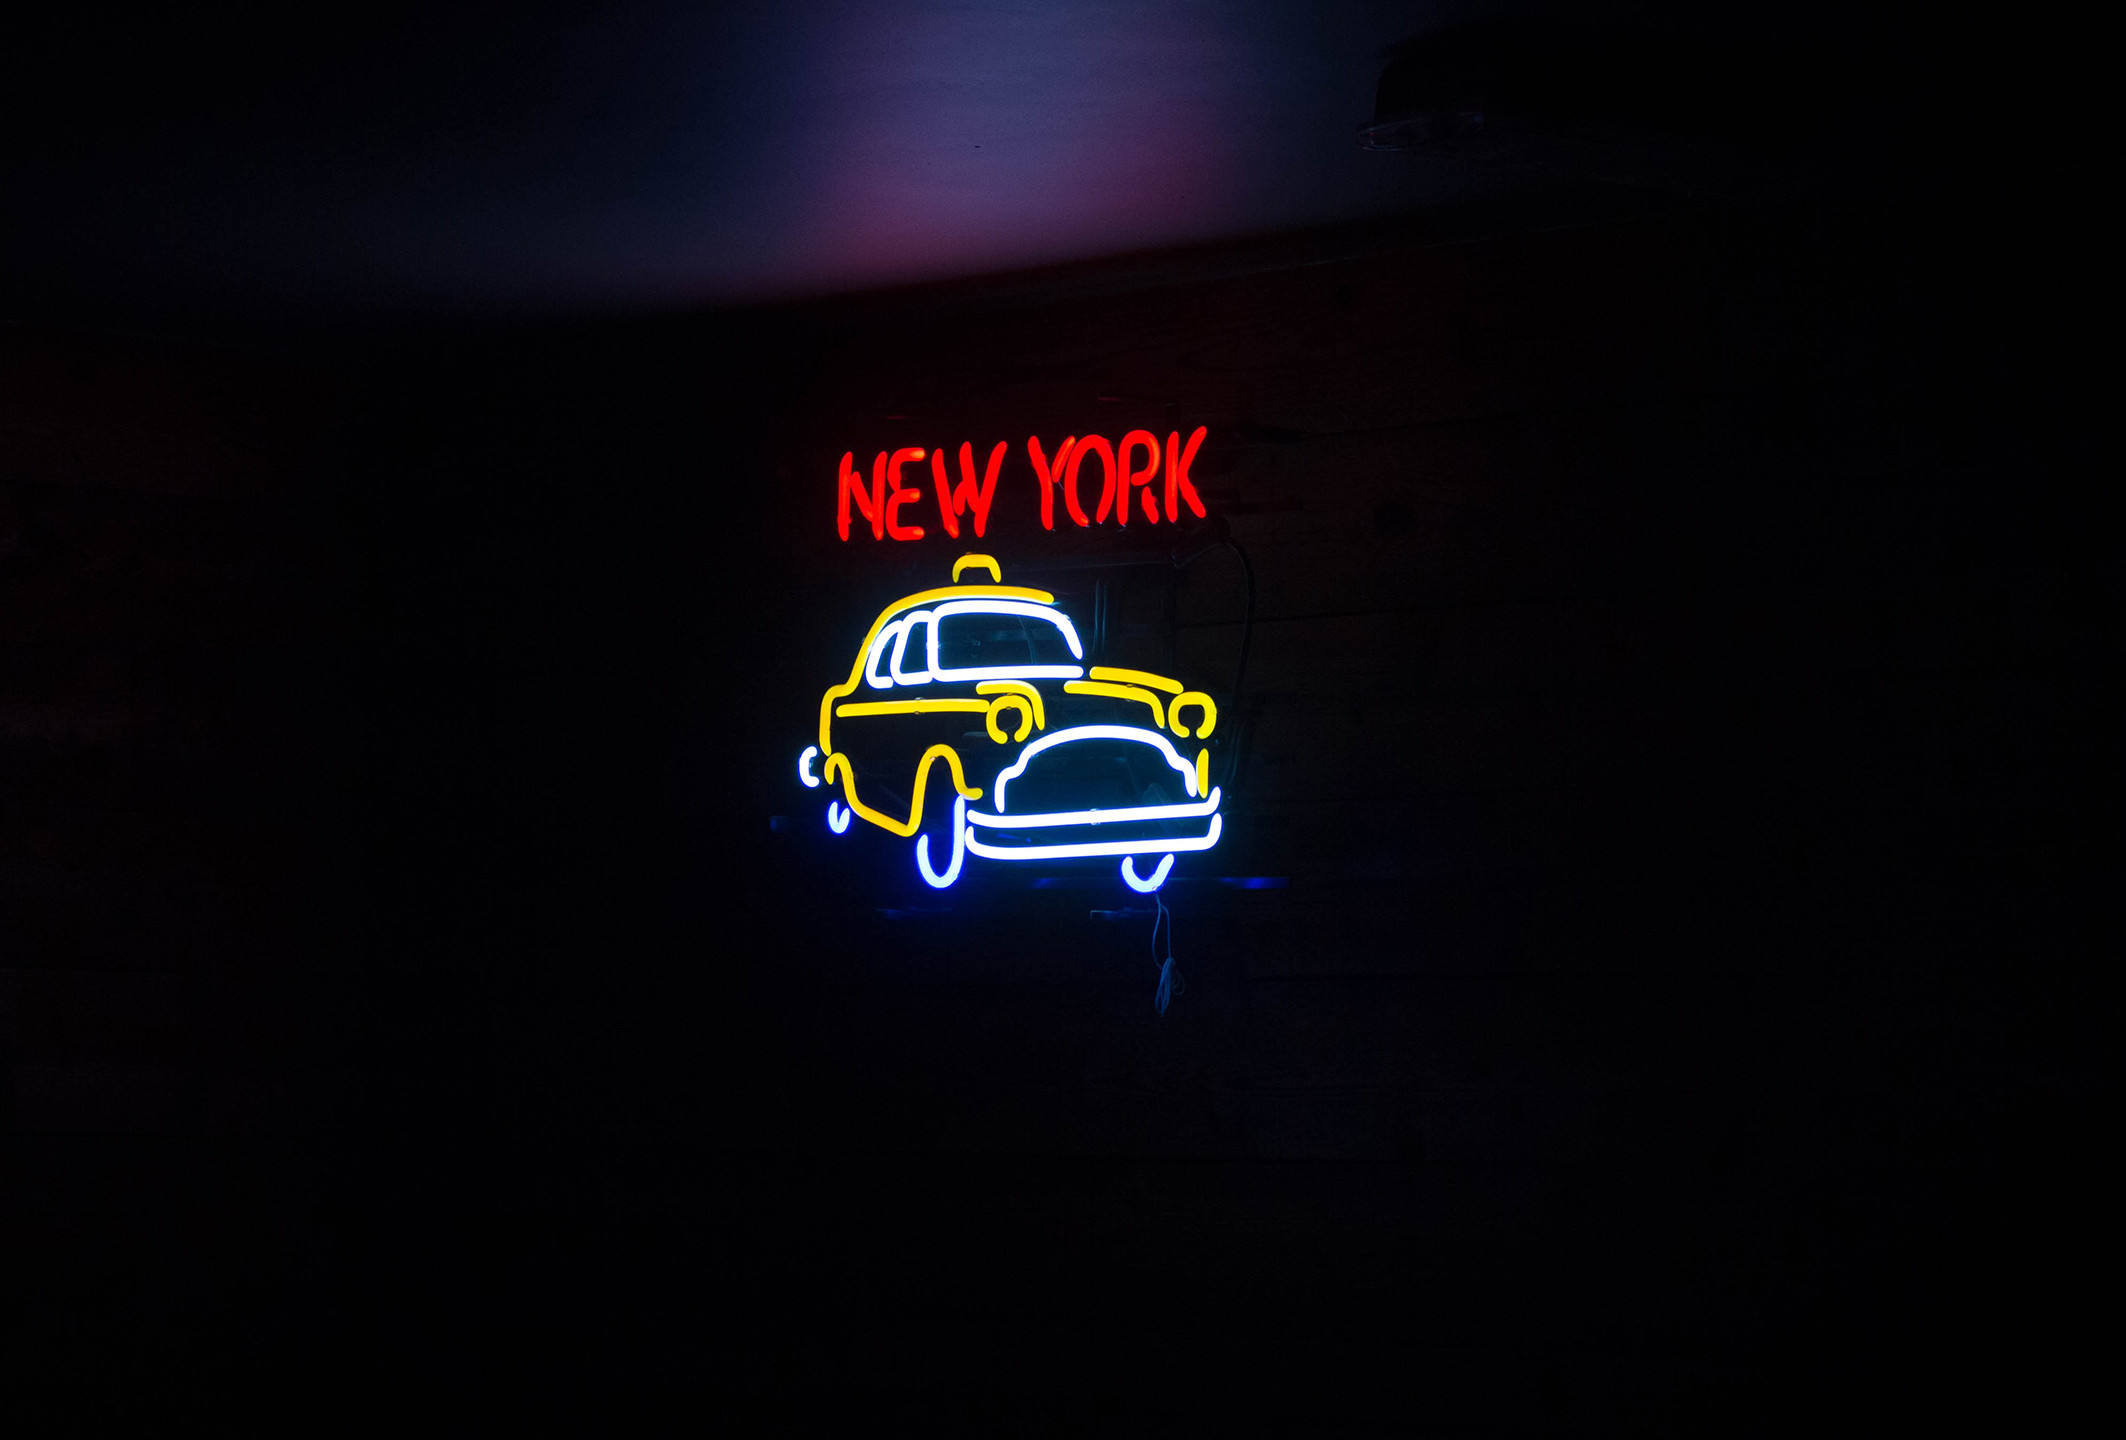 Taxi sign / NYC